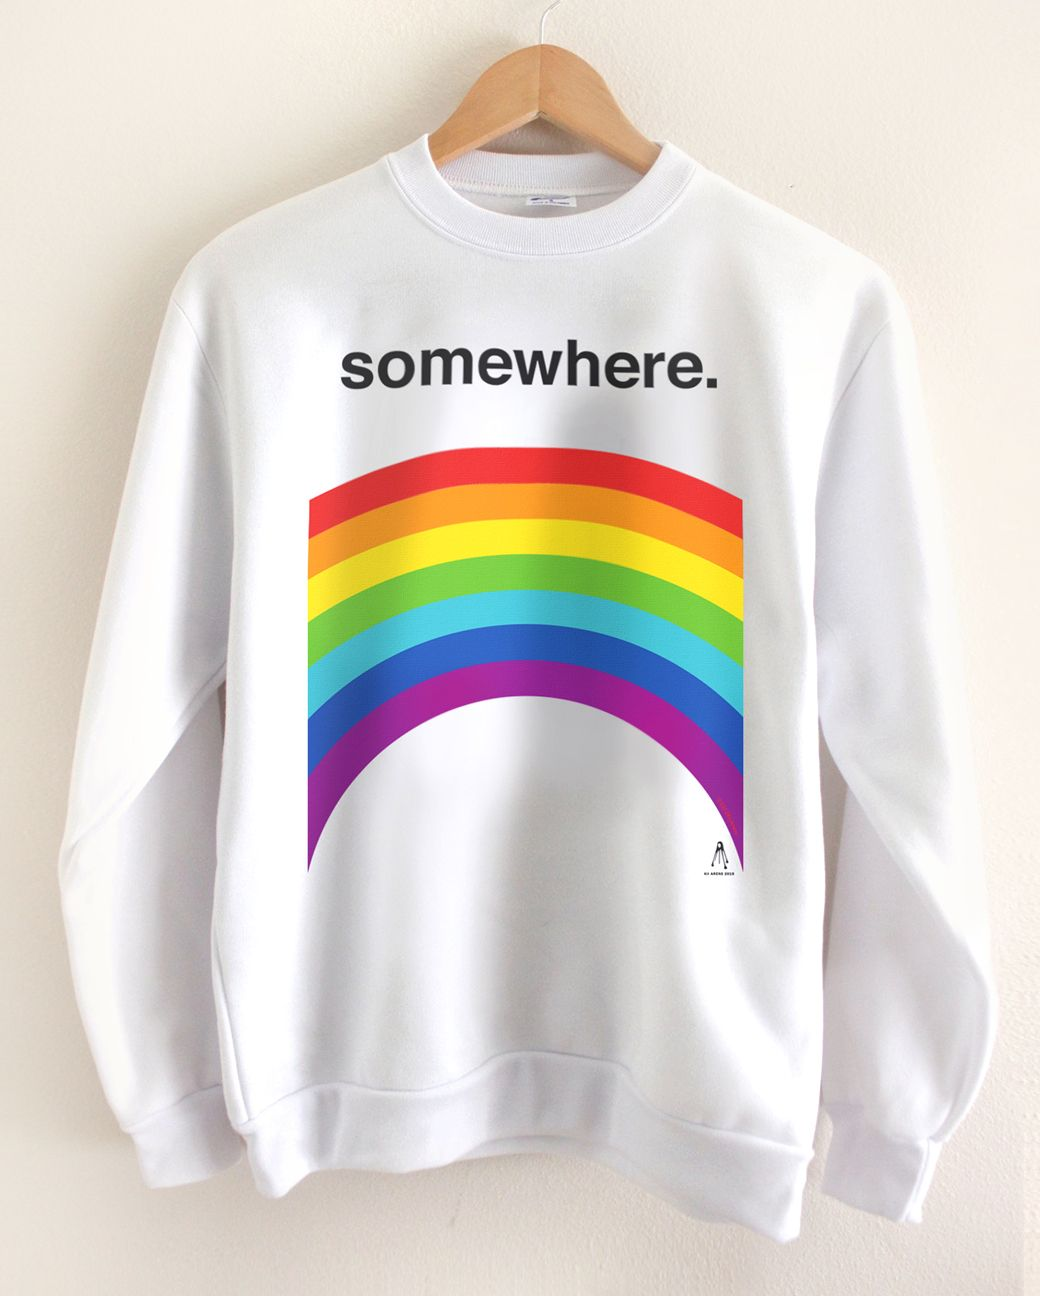 SOMEWHERE OTR 2019 CREWNECK SWEATSHIRT - WHITE